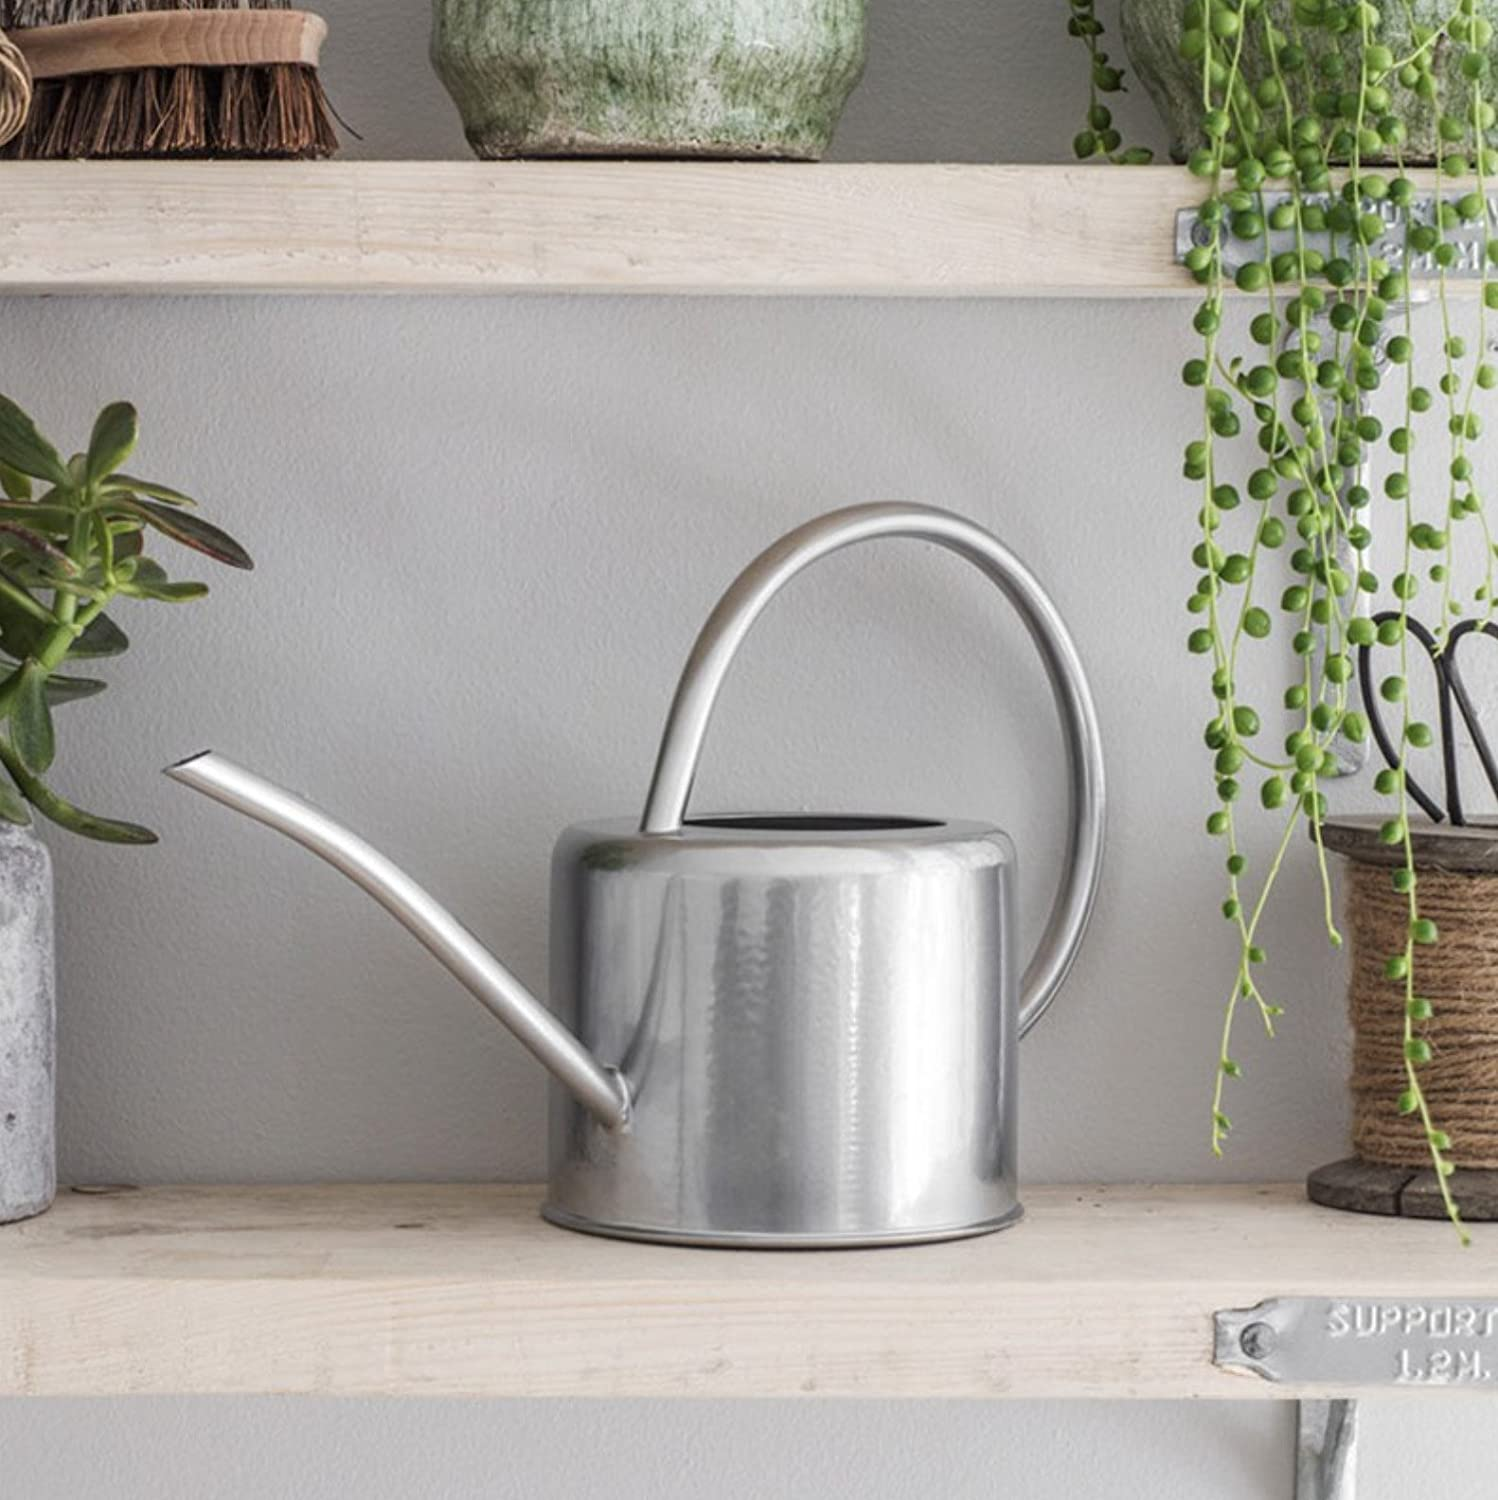 Ckb Ltd 1 9l Indoor Watering Can Galvanized Steel For Houseplants Contemporary Small Metal Design With Narrow Spout And High Handle Silver Amazon Co Uk Garden Outdoors